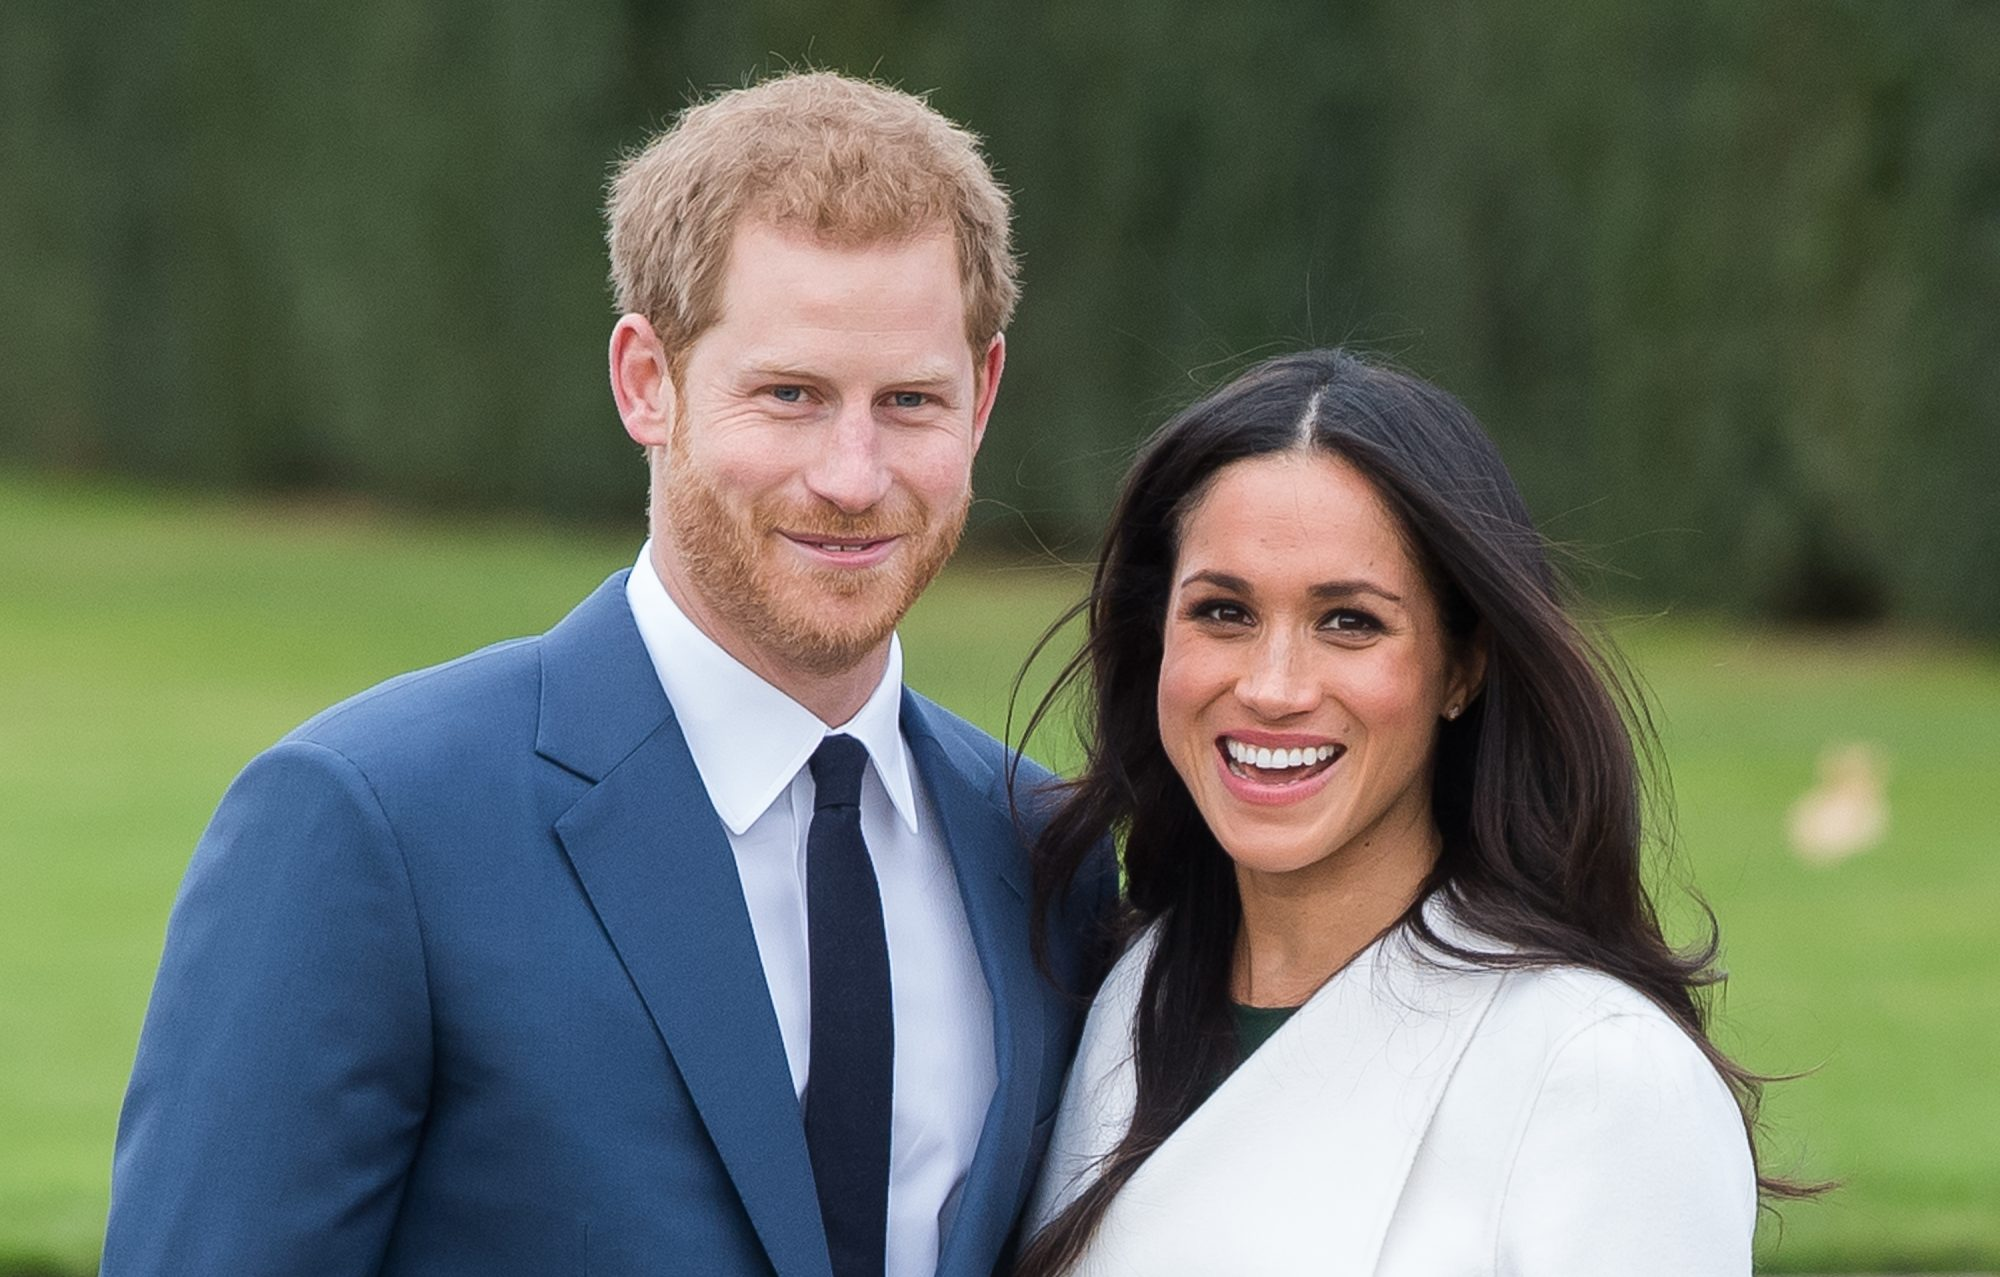 3 Behind-the-Scenes Secrets From Harry and Meghan's Dreamy Engagement Photo Shoot